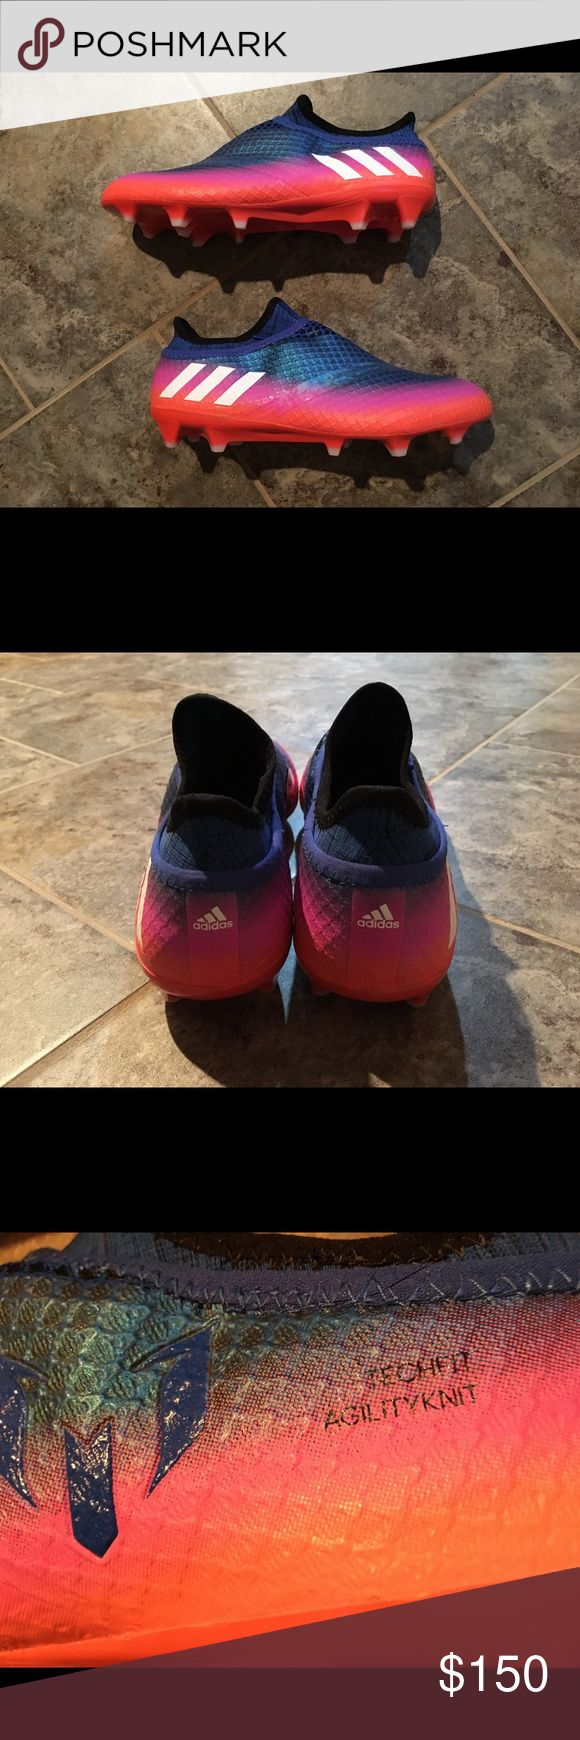 Adidas Messi 16+ Pureagility Firm Ground Cleats Size 8.5. Brand new condition. Comes with extra insoles. Next day shipping. adidas Shoes Athletic Shoes